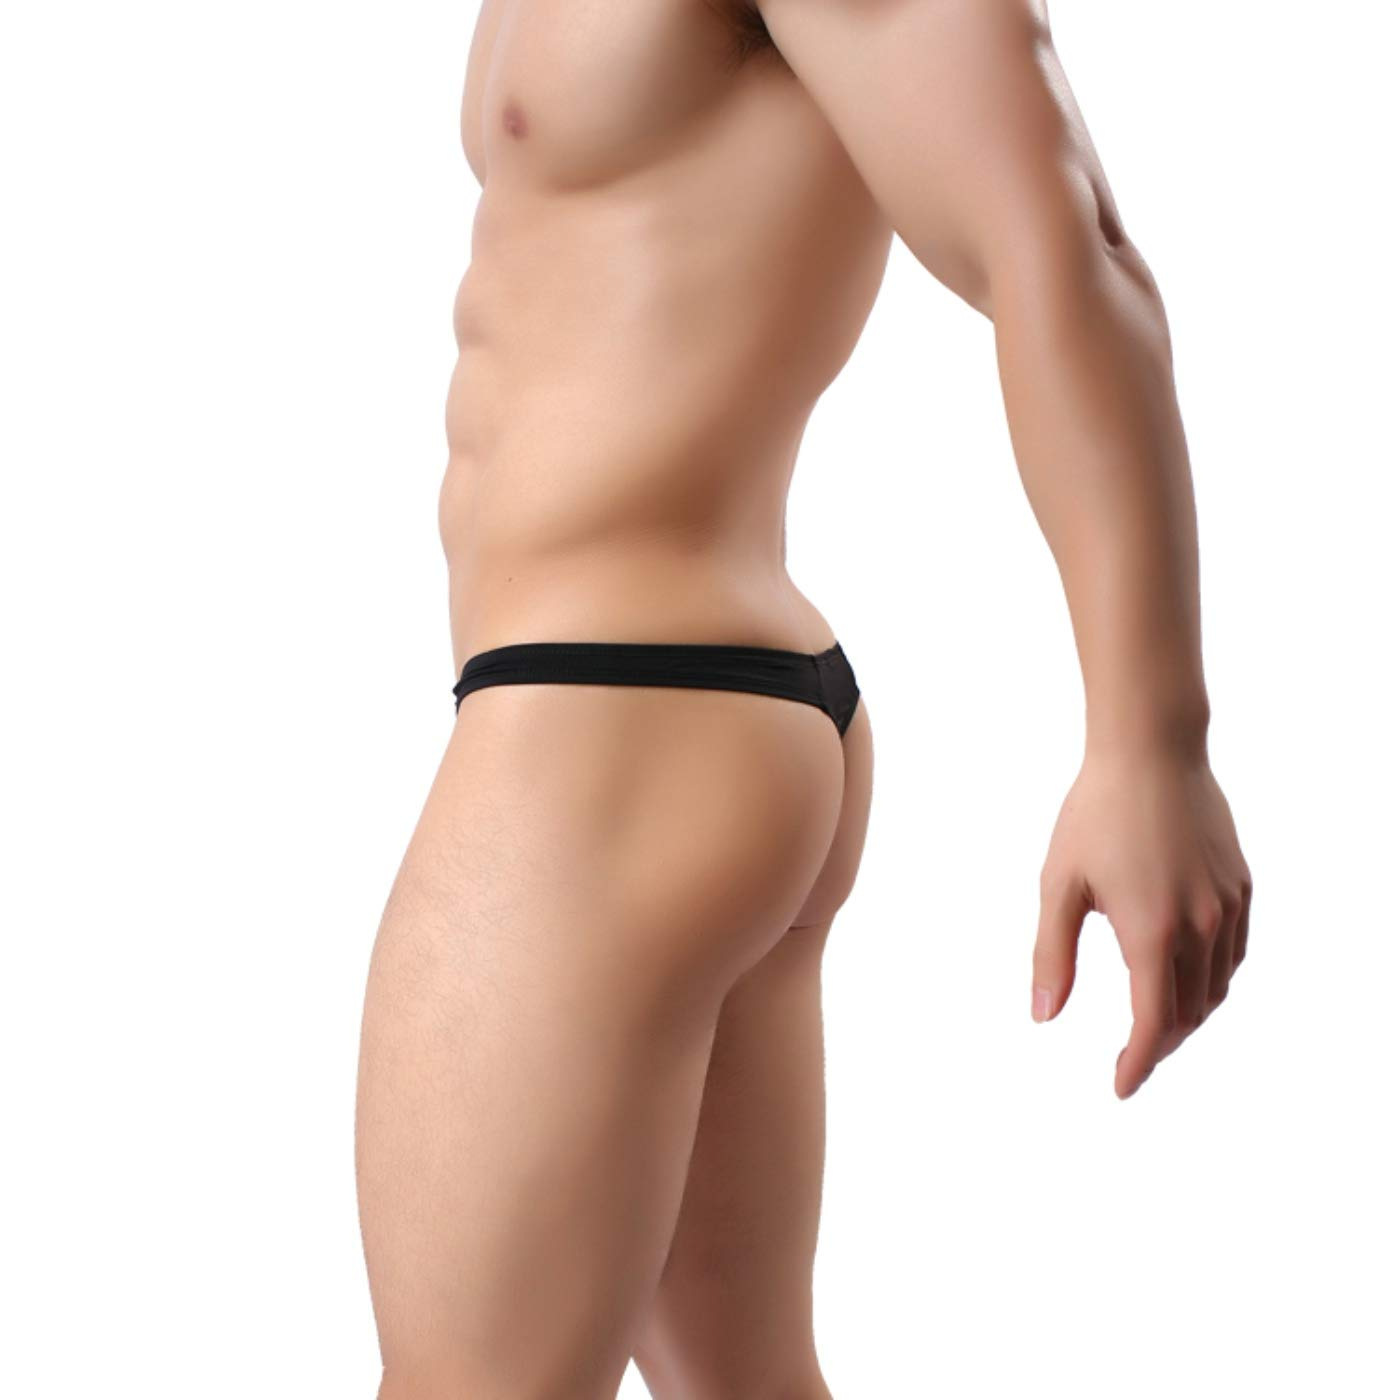 MuscleMate Premium Quality Mens Thong G-String Mens Sport Underwear Comfort